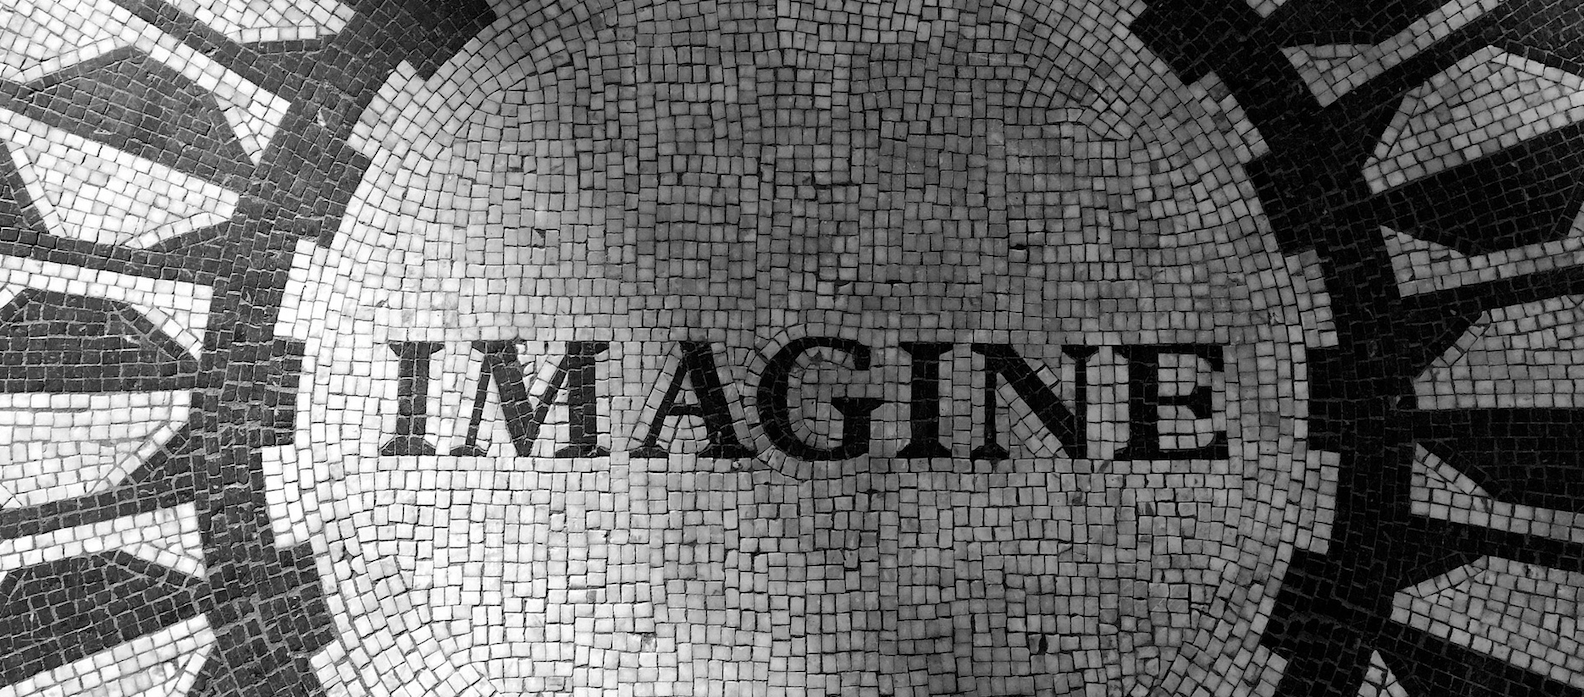 Tiled floor with word imagine